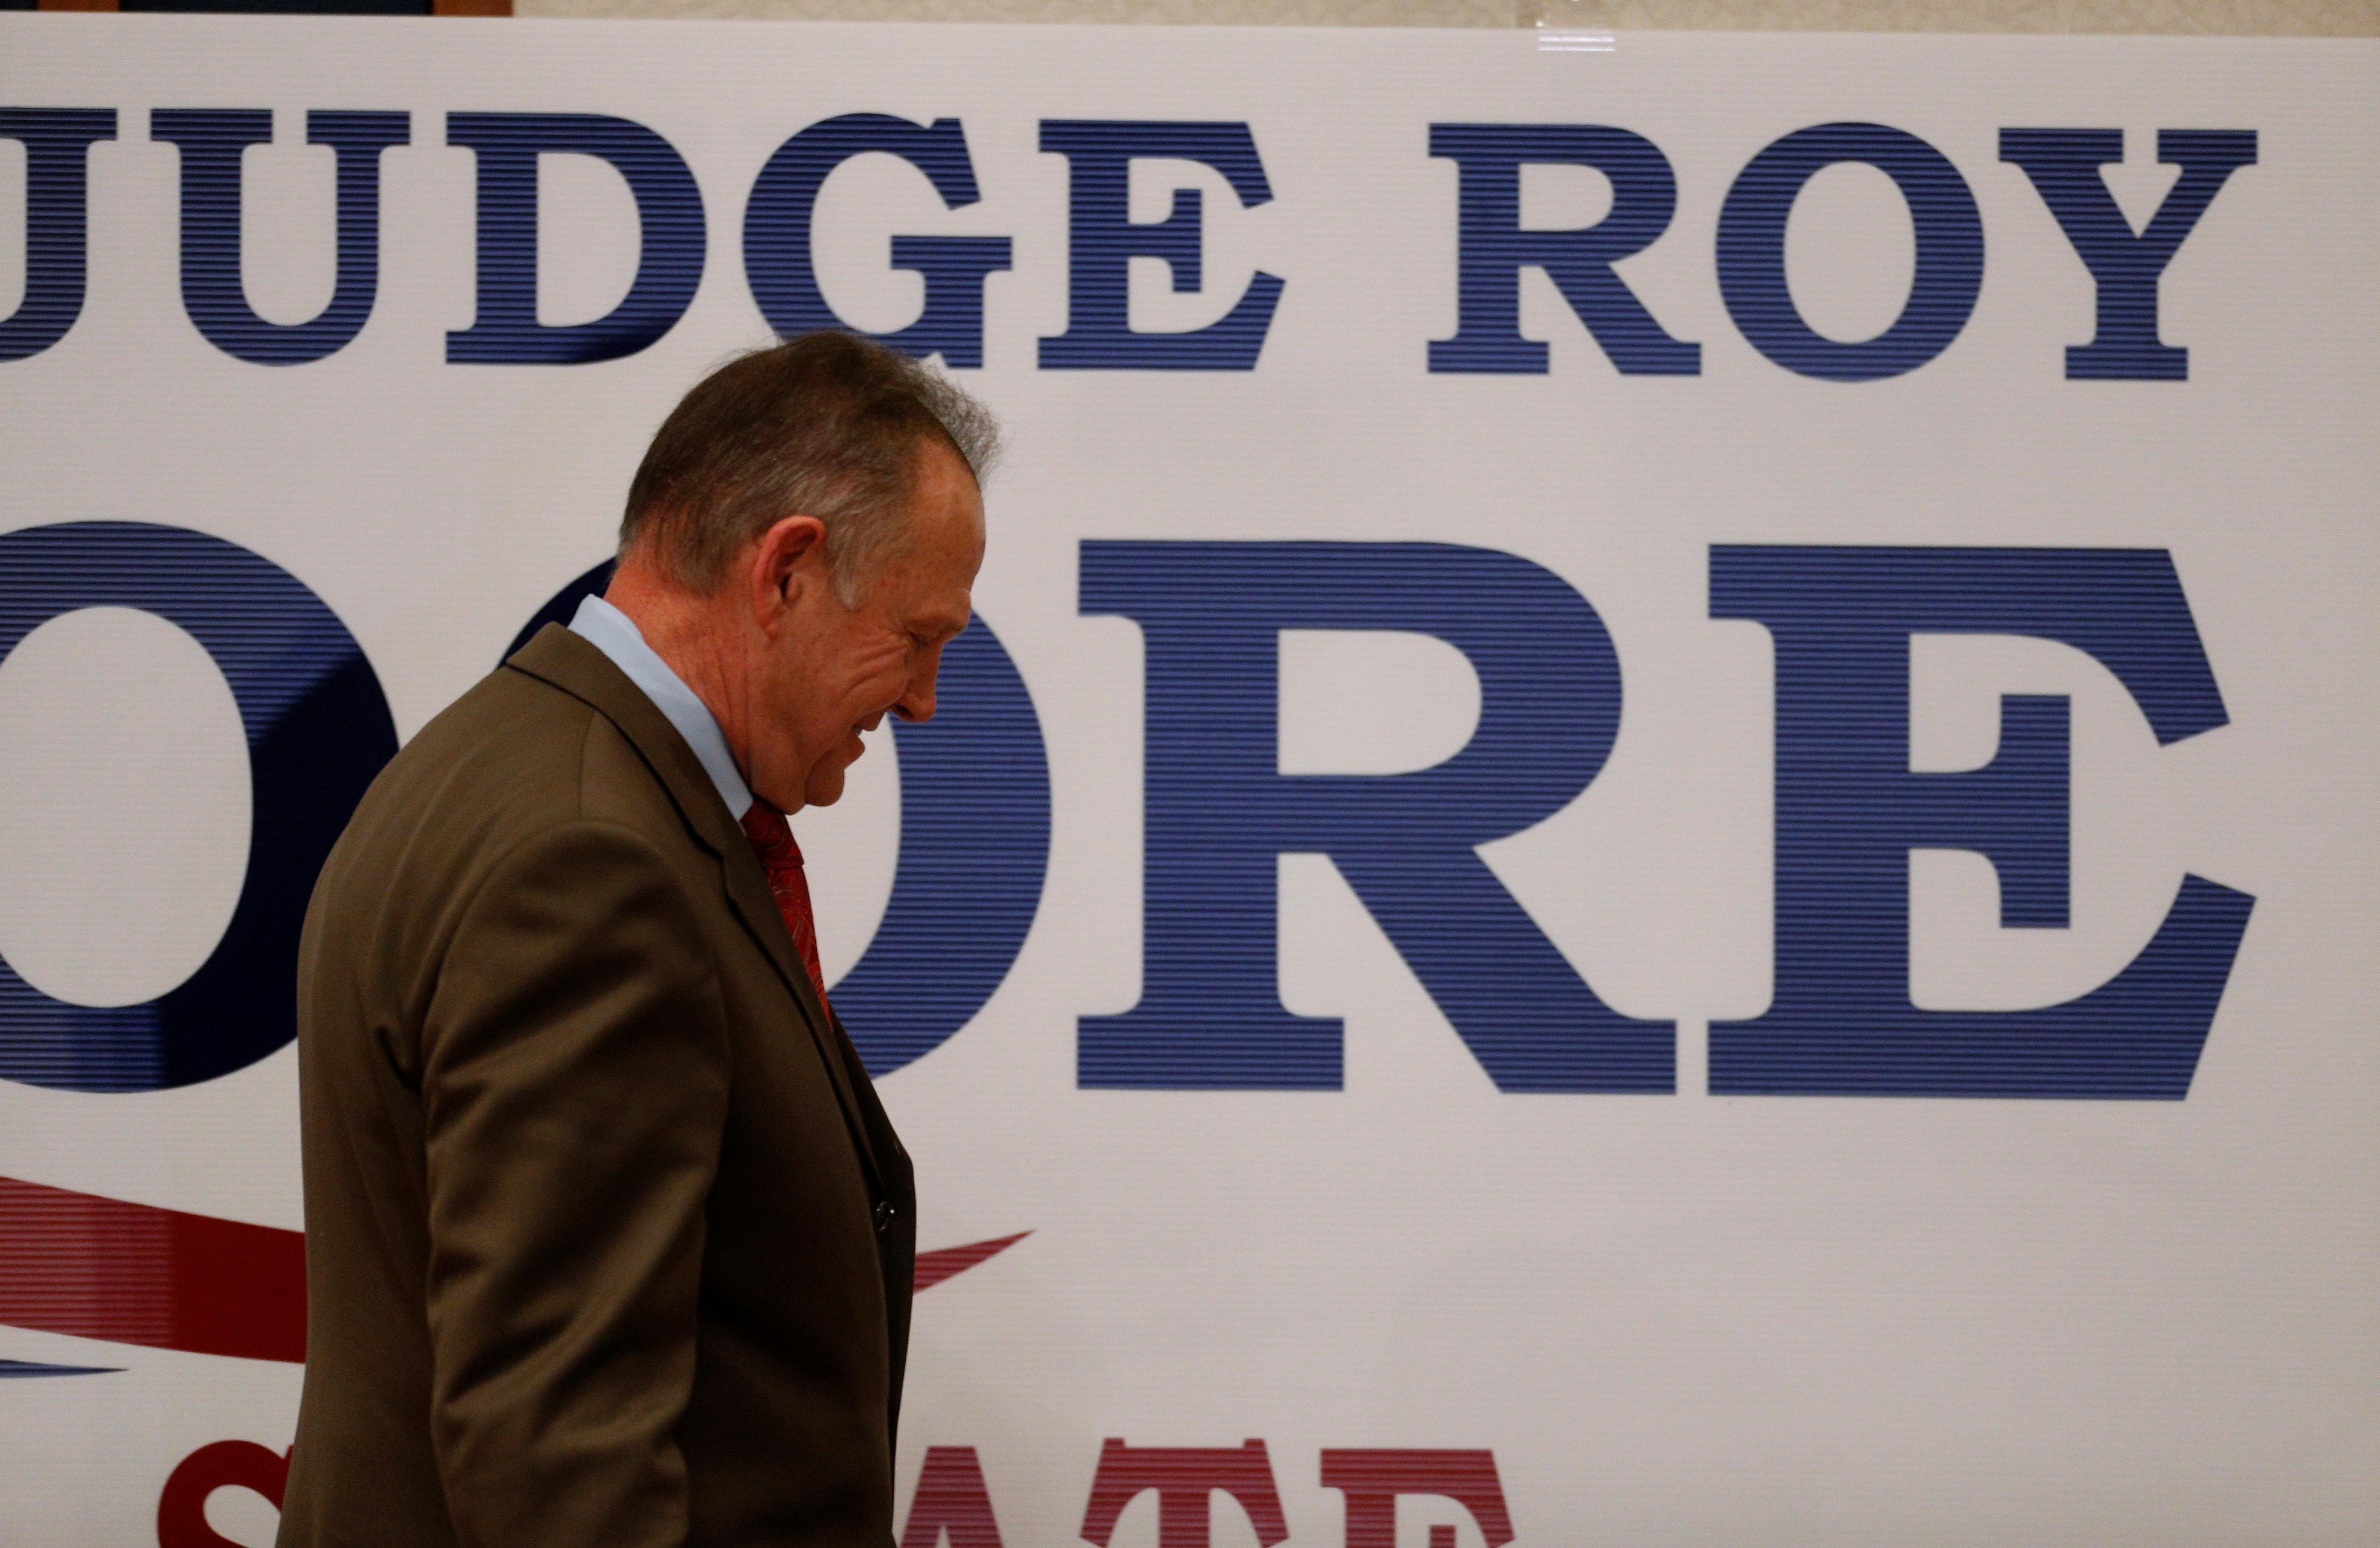 Republican Senate candidate Roy Moore leaves the stage after addressing supporters in Montgomery, Alabama, December 12, 2017. Jonathan Bachman